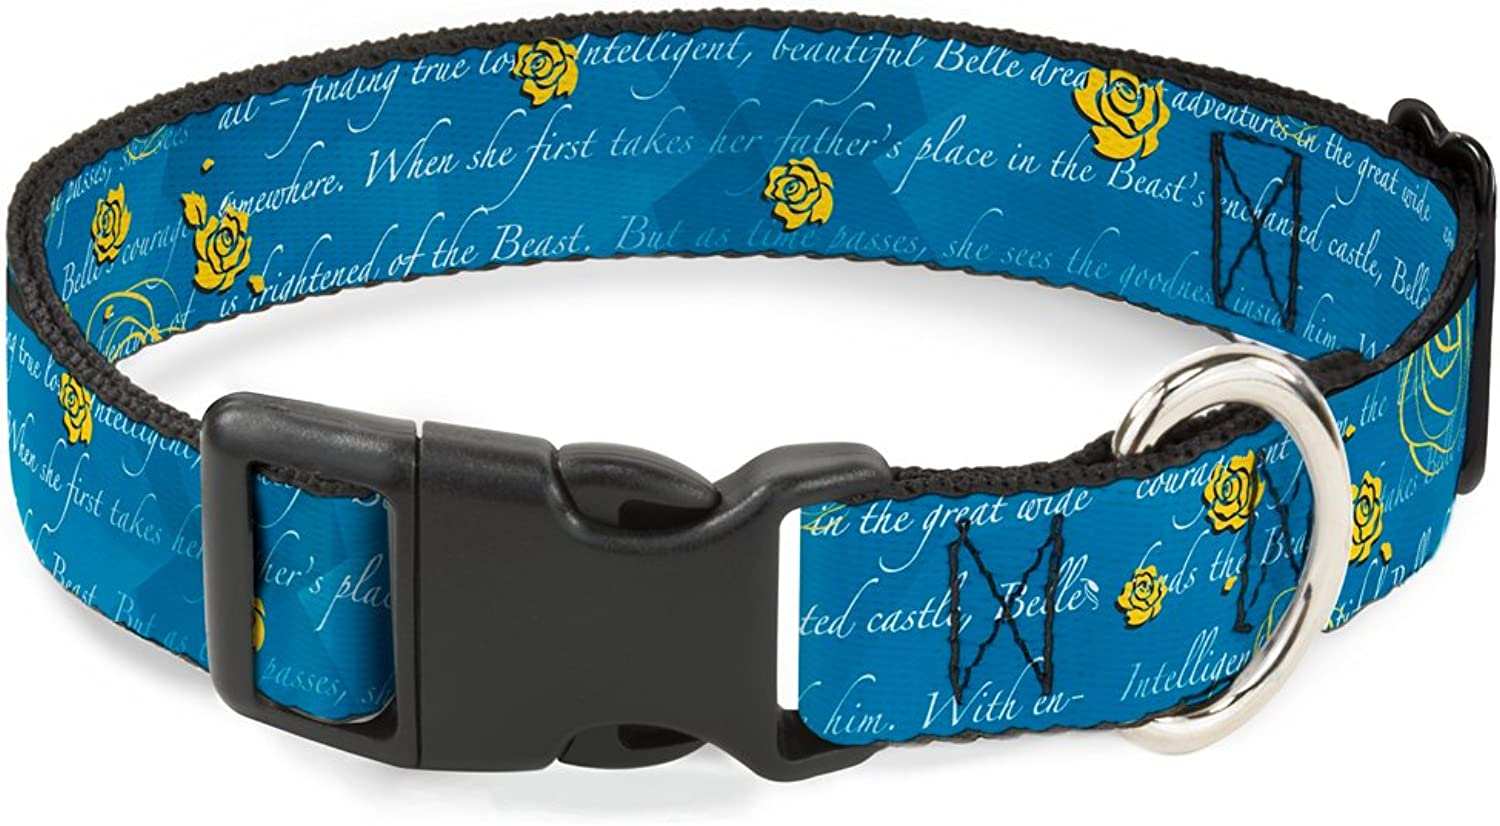 BuckleDown PCWDY045M Dog Collar Plastic Clip Buckle, 1 x1117 , Beauty & The Beast Story Script